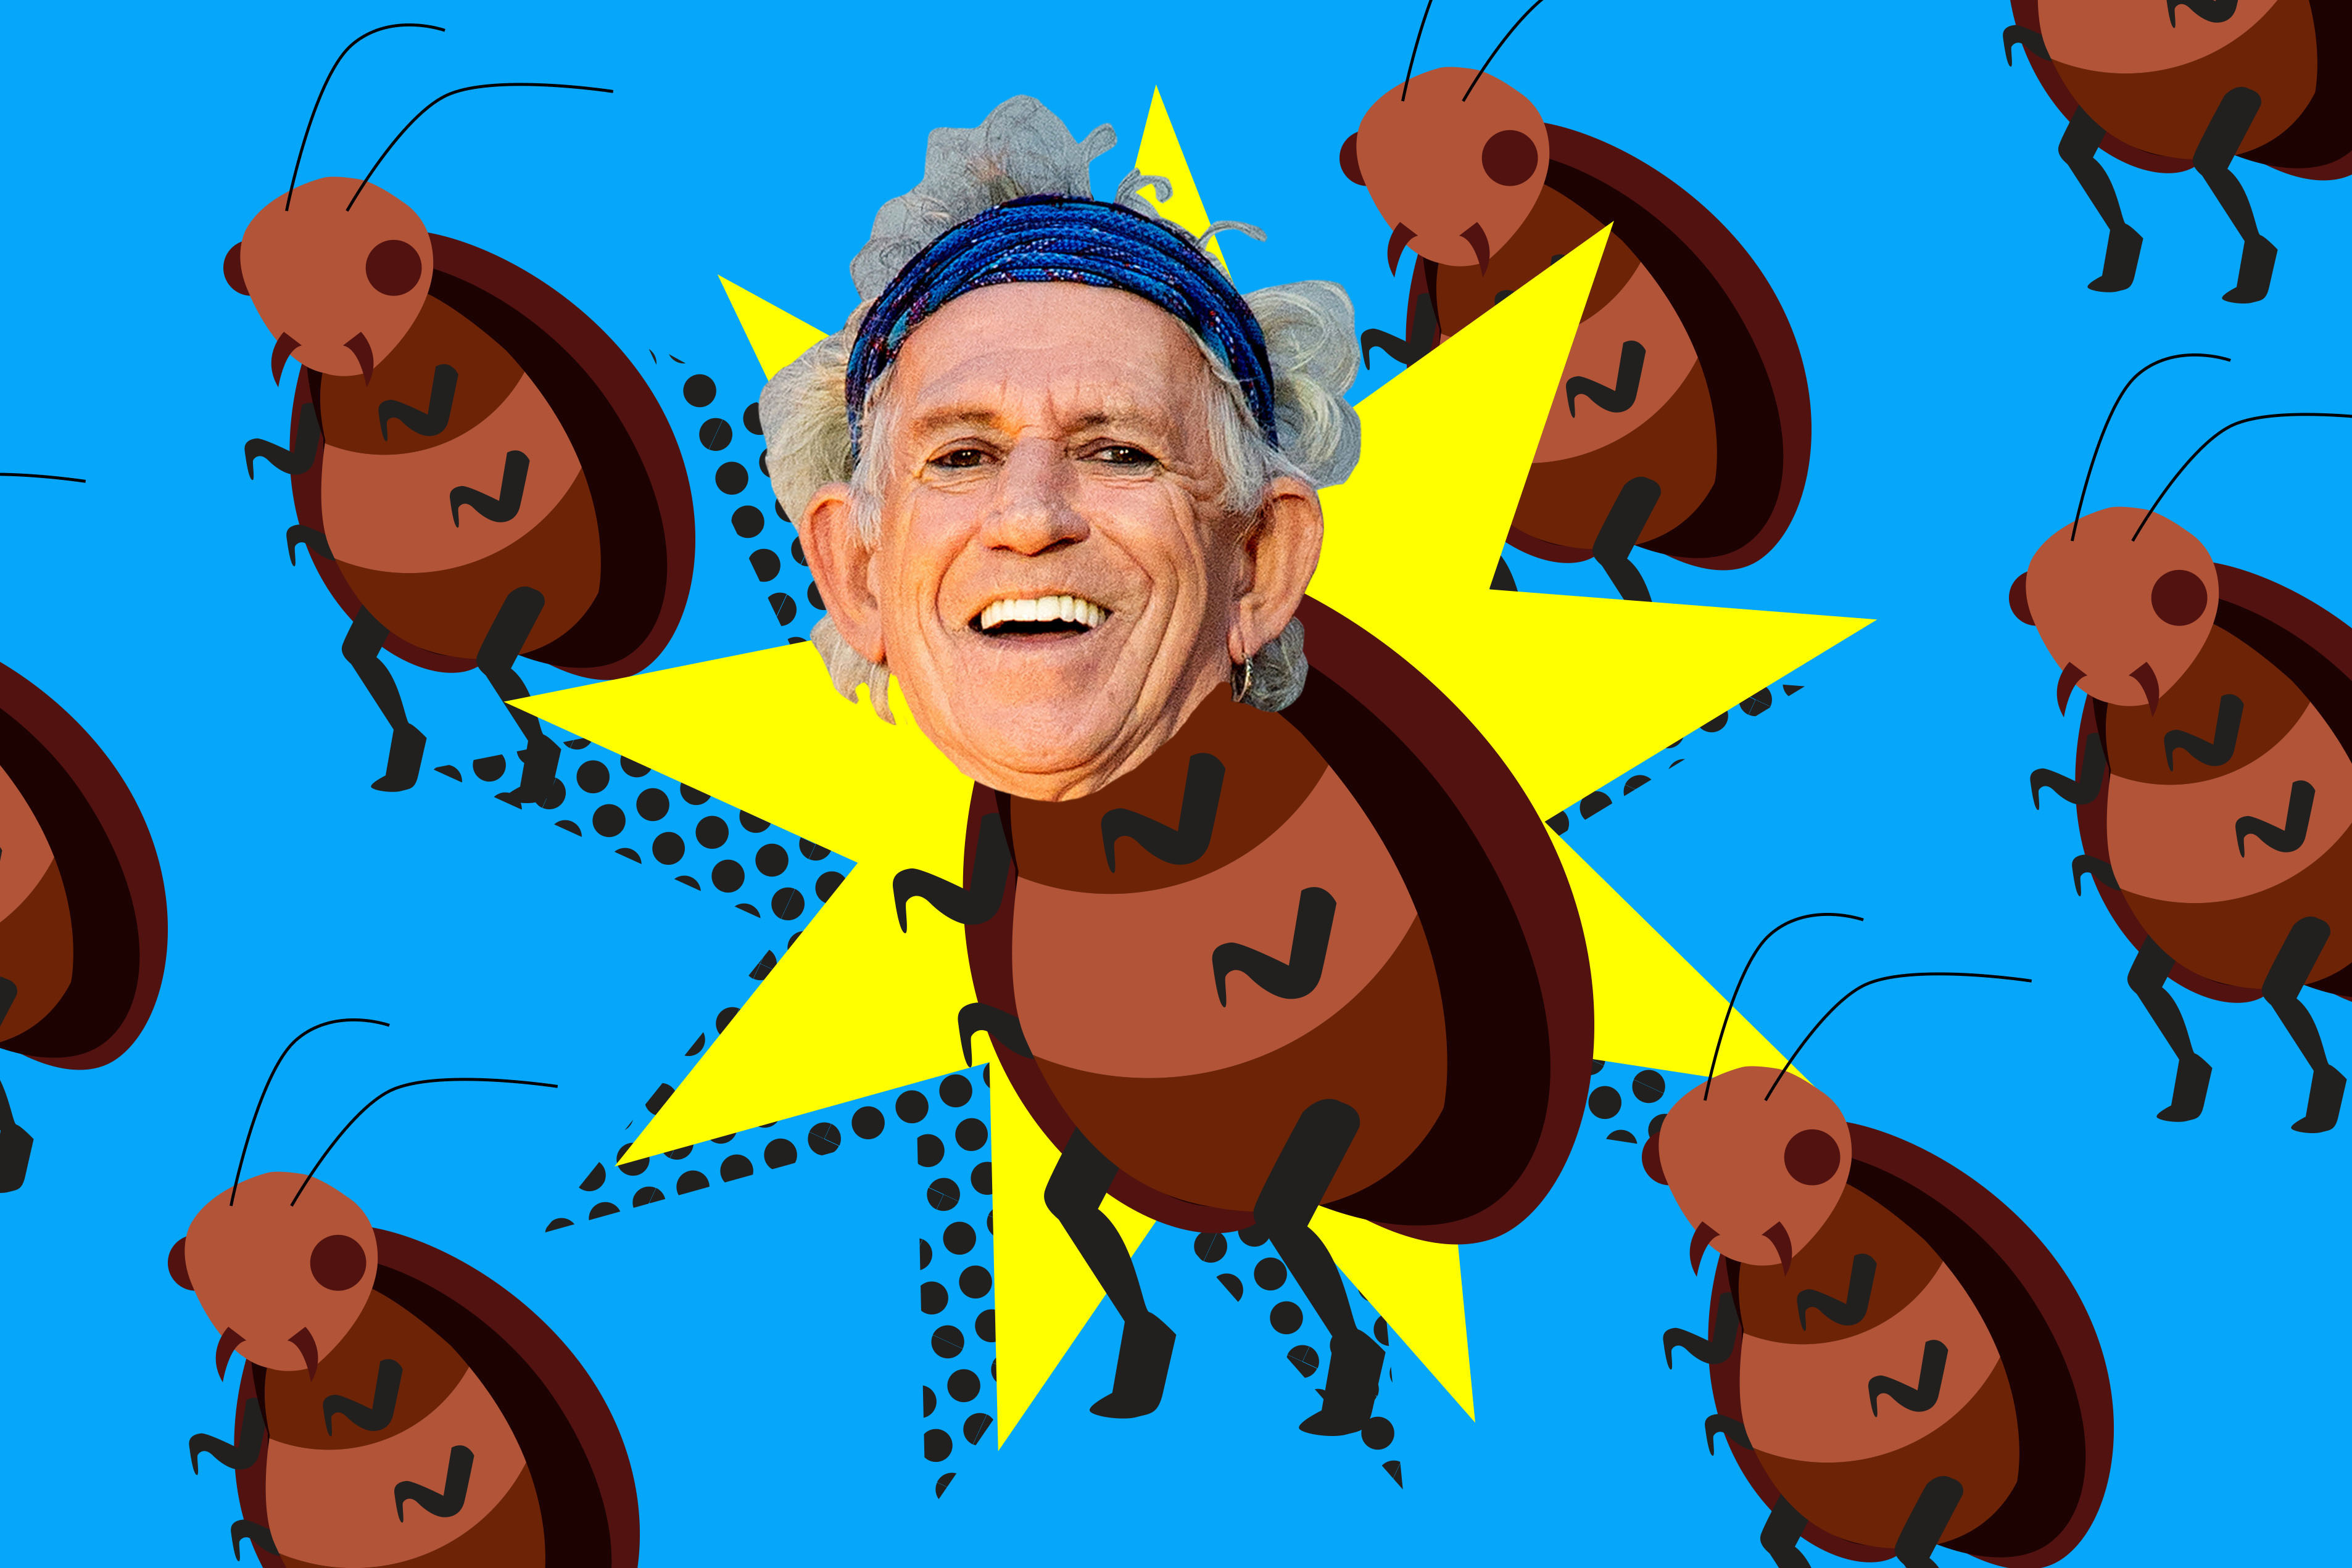 Keith Richards gets cockroach named after him for birthday